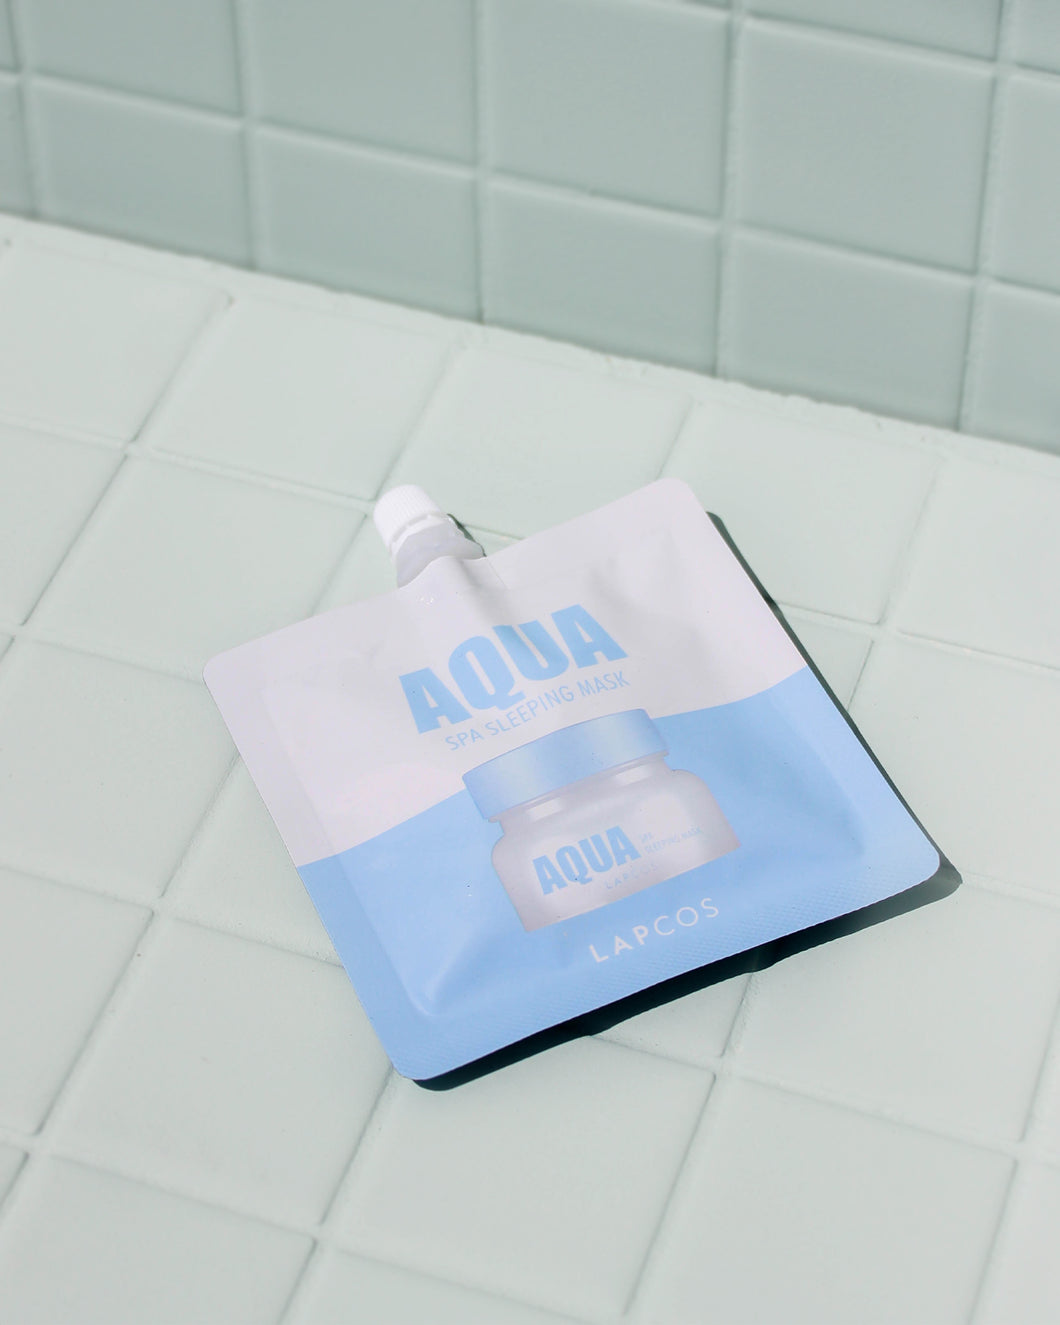 Aqua Sleeping Cream Spout